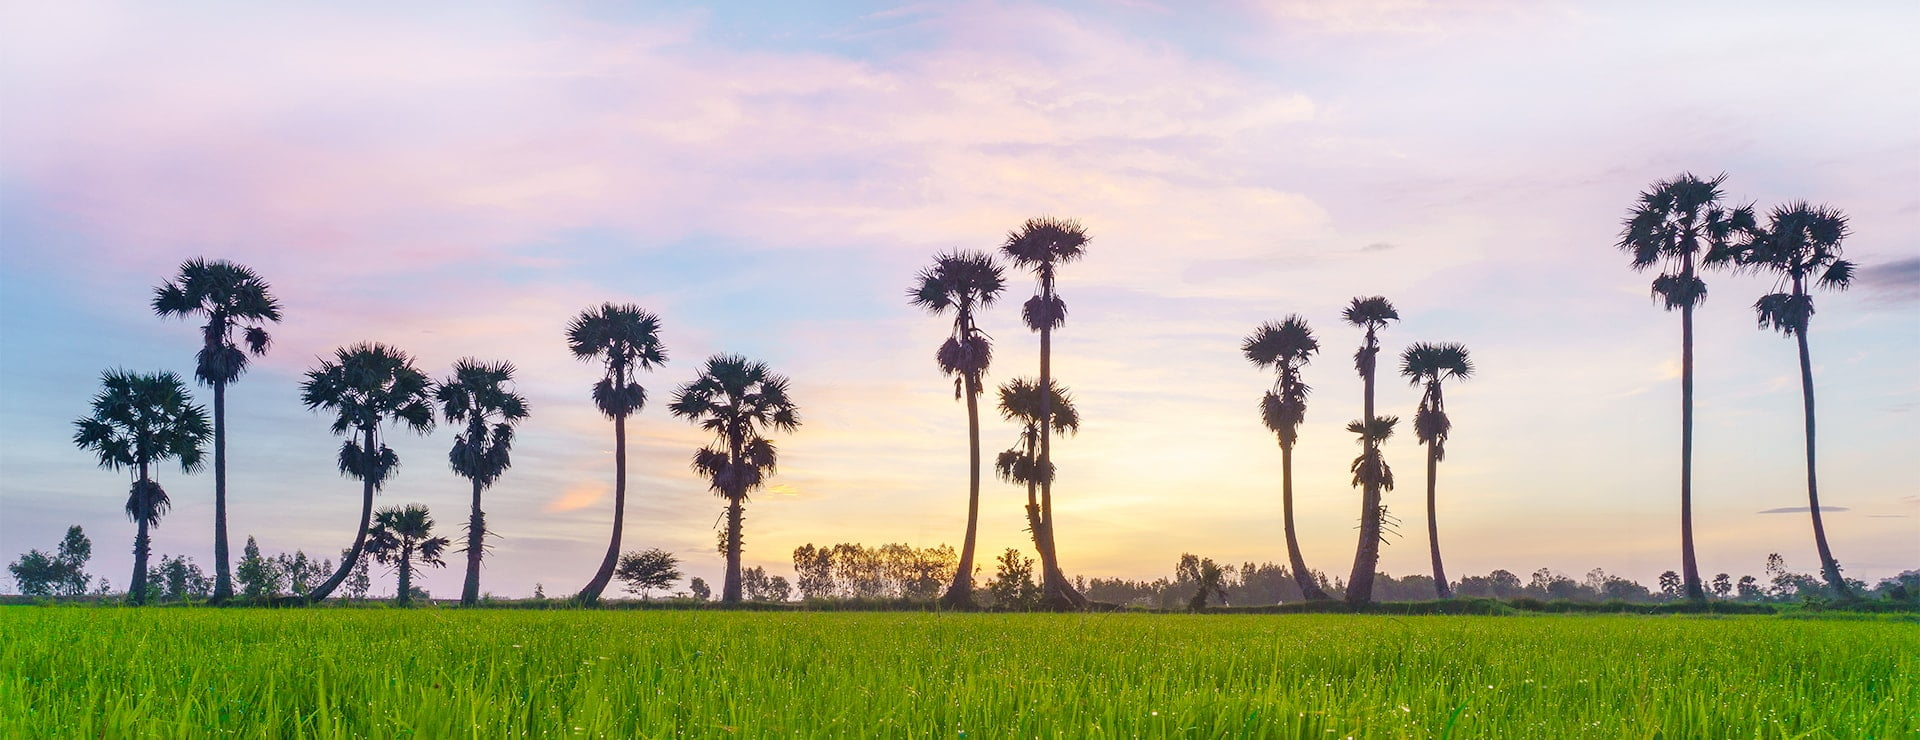 peaceful scenery of mekong delta vietnam